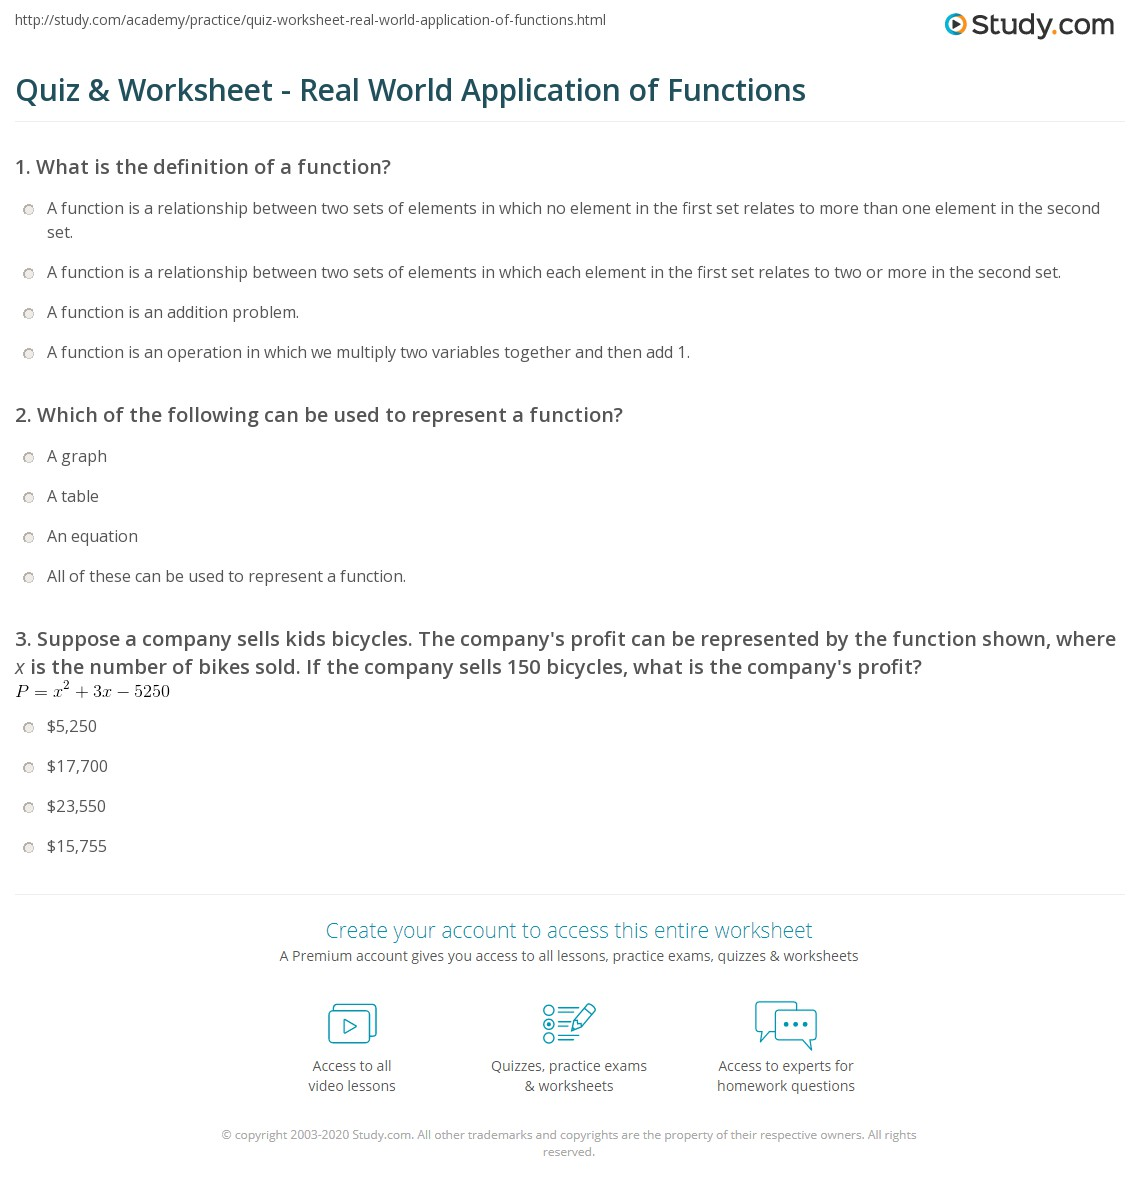 quiz & worksheet - real world application of functions | study